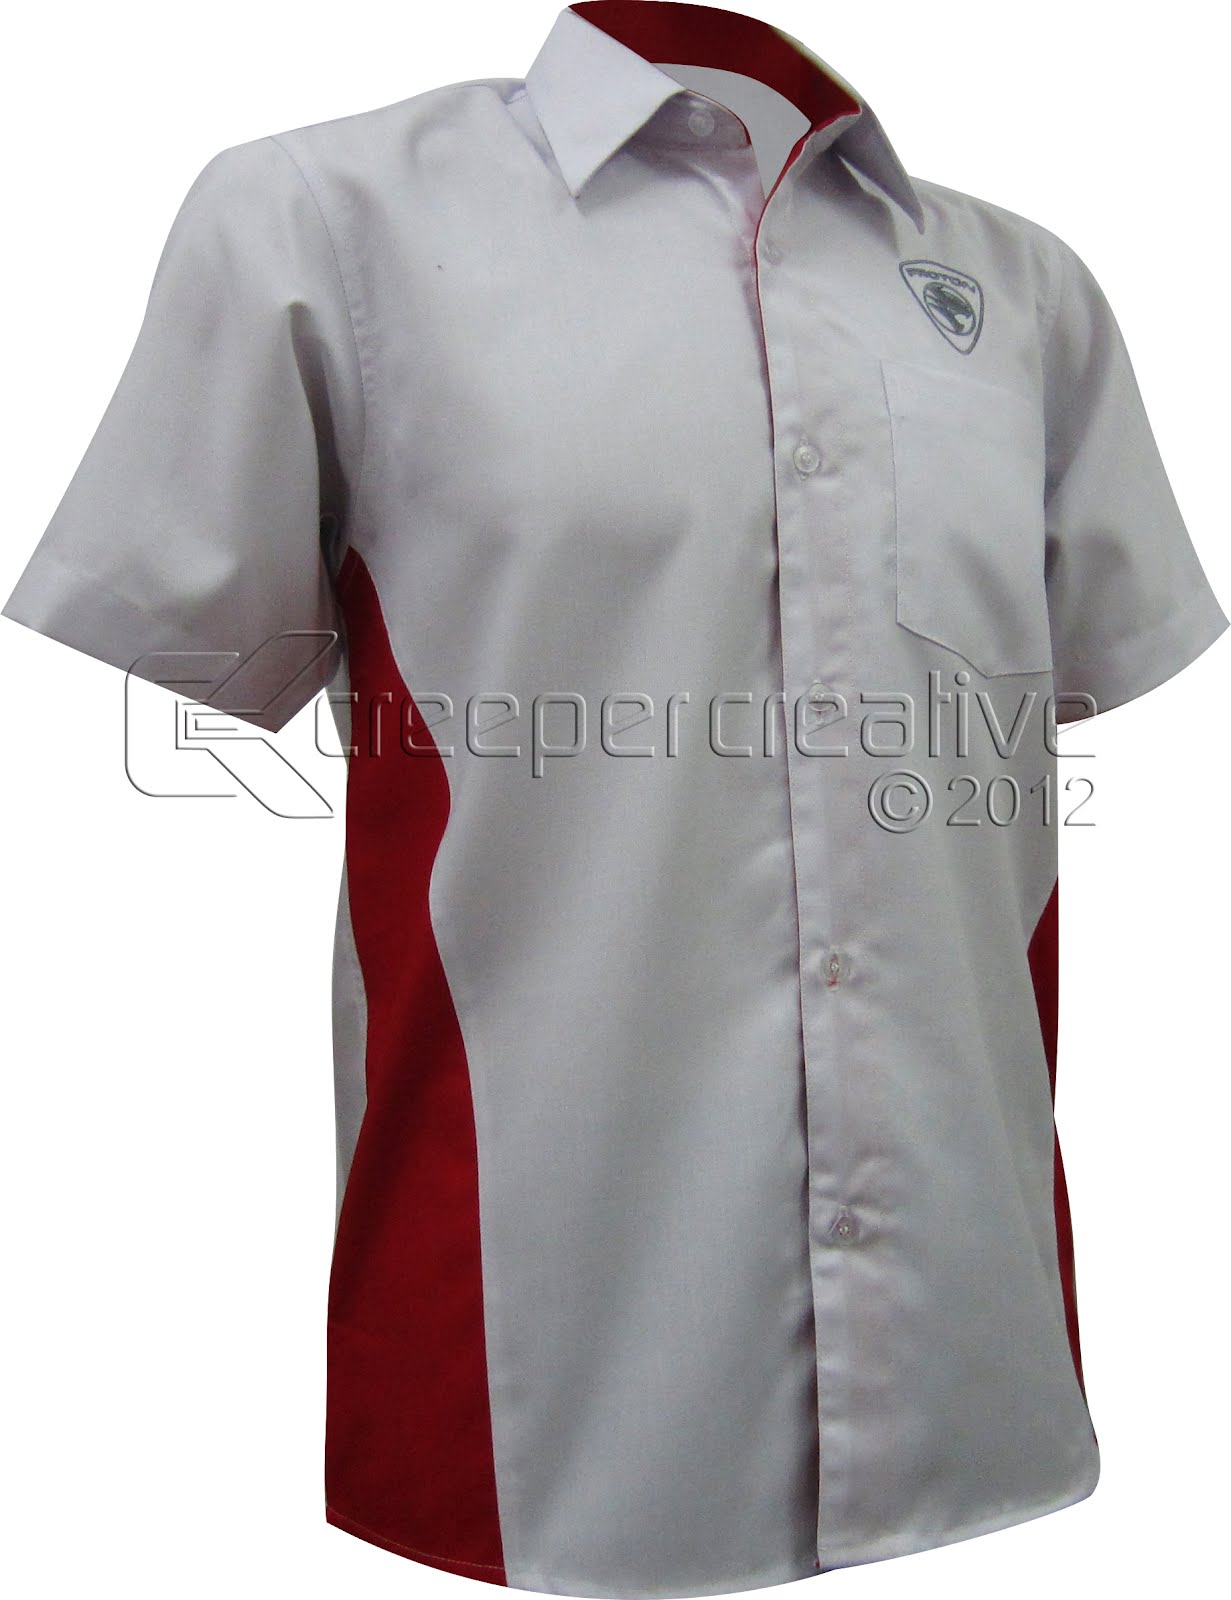 F1 Shirt: Corporate Shirt - Proton Management